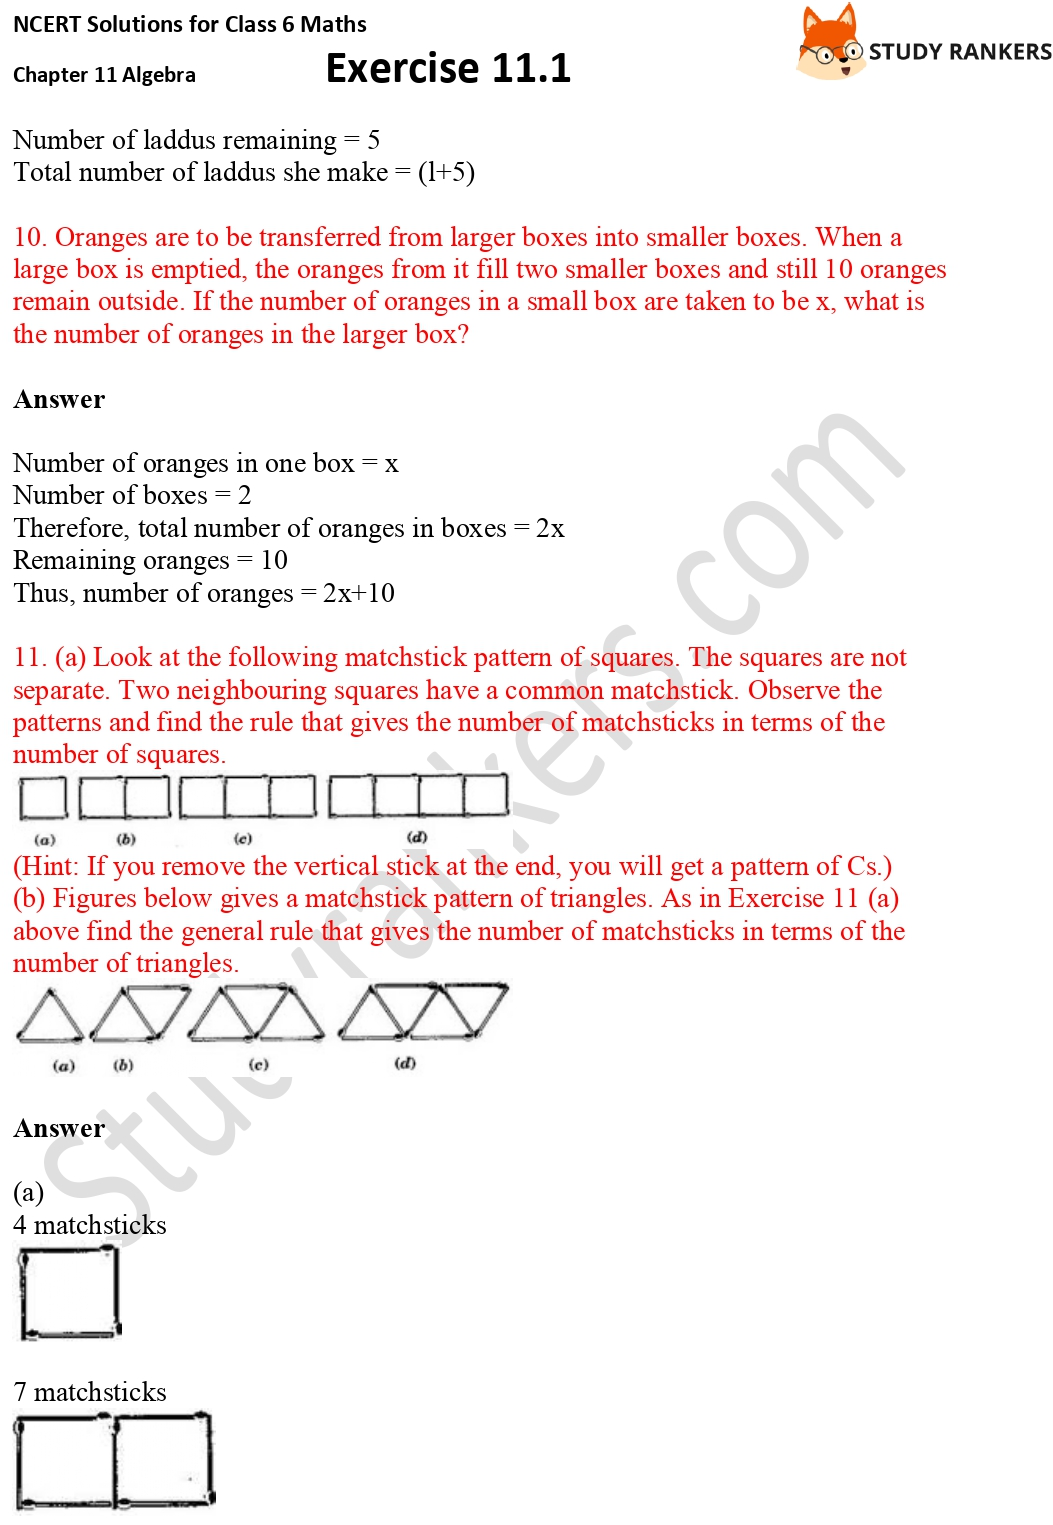 NCERT Solutions for Class 6 Maths Chapter 11 Algebra Exercise 11.1 Part 4